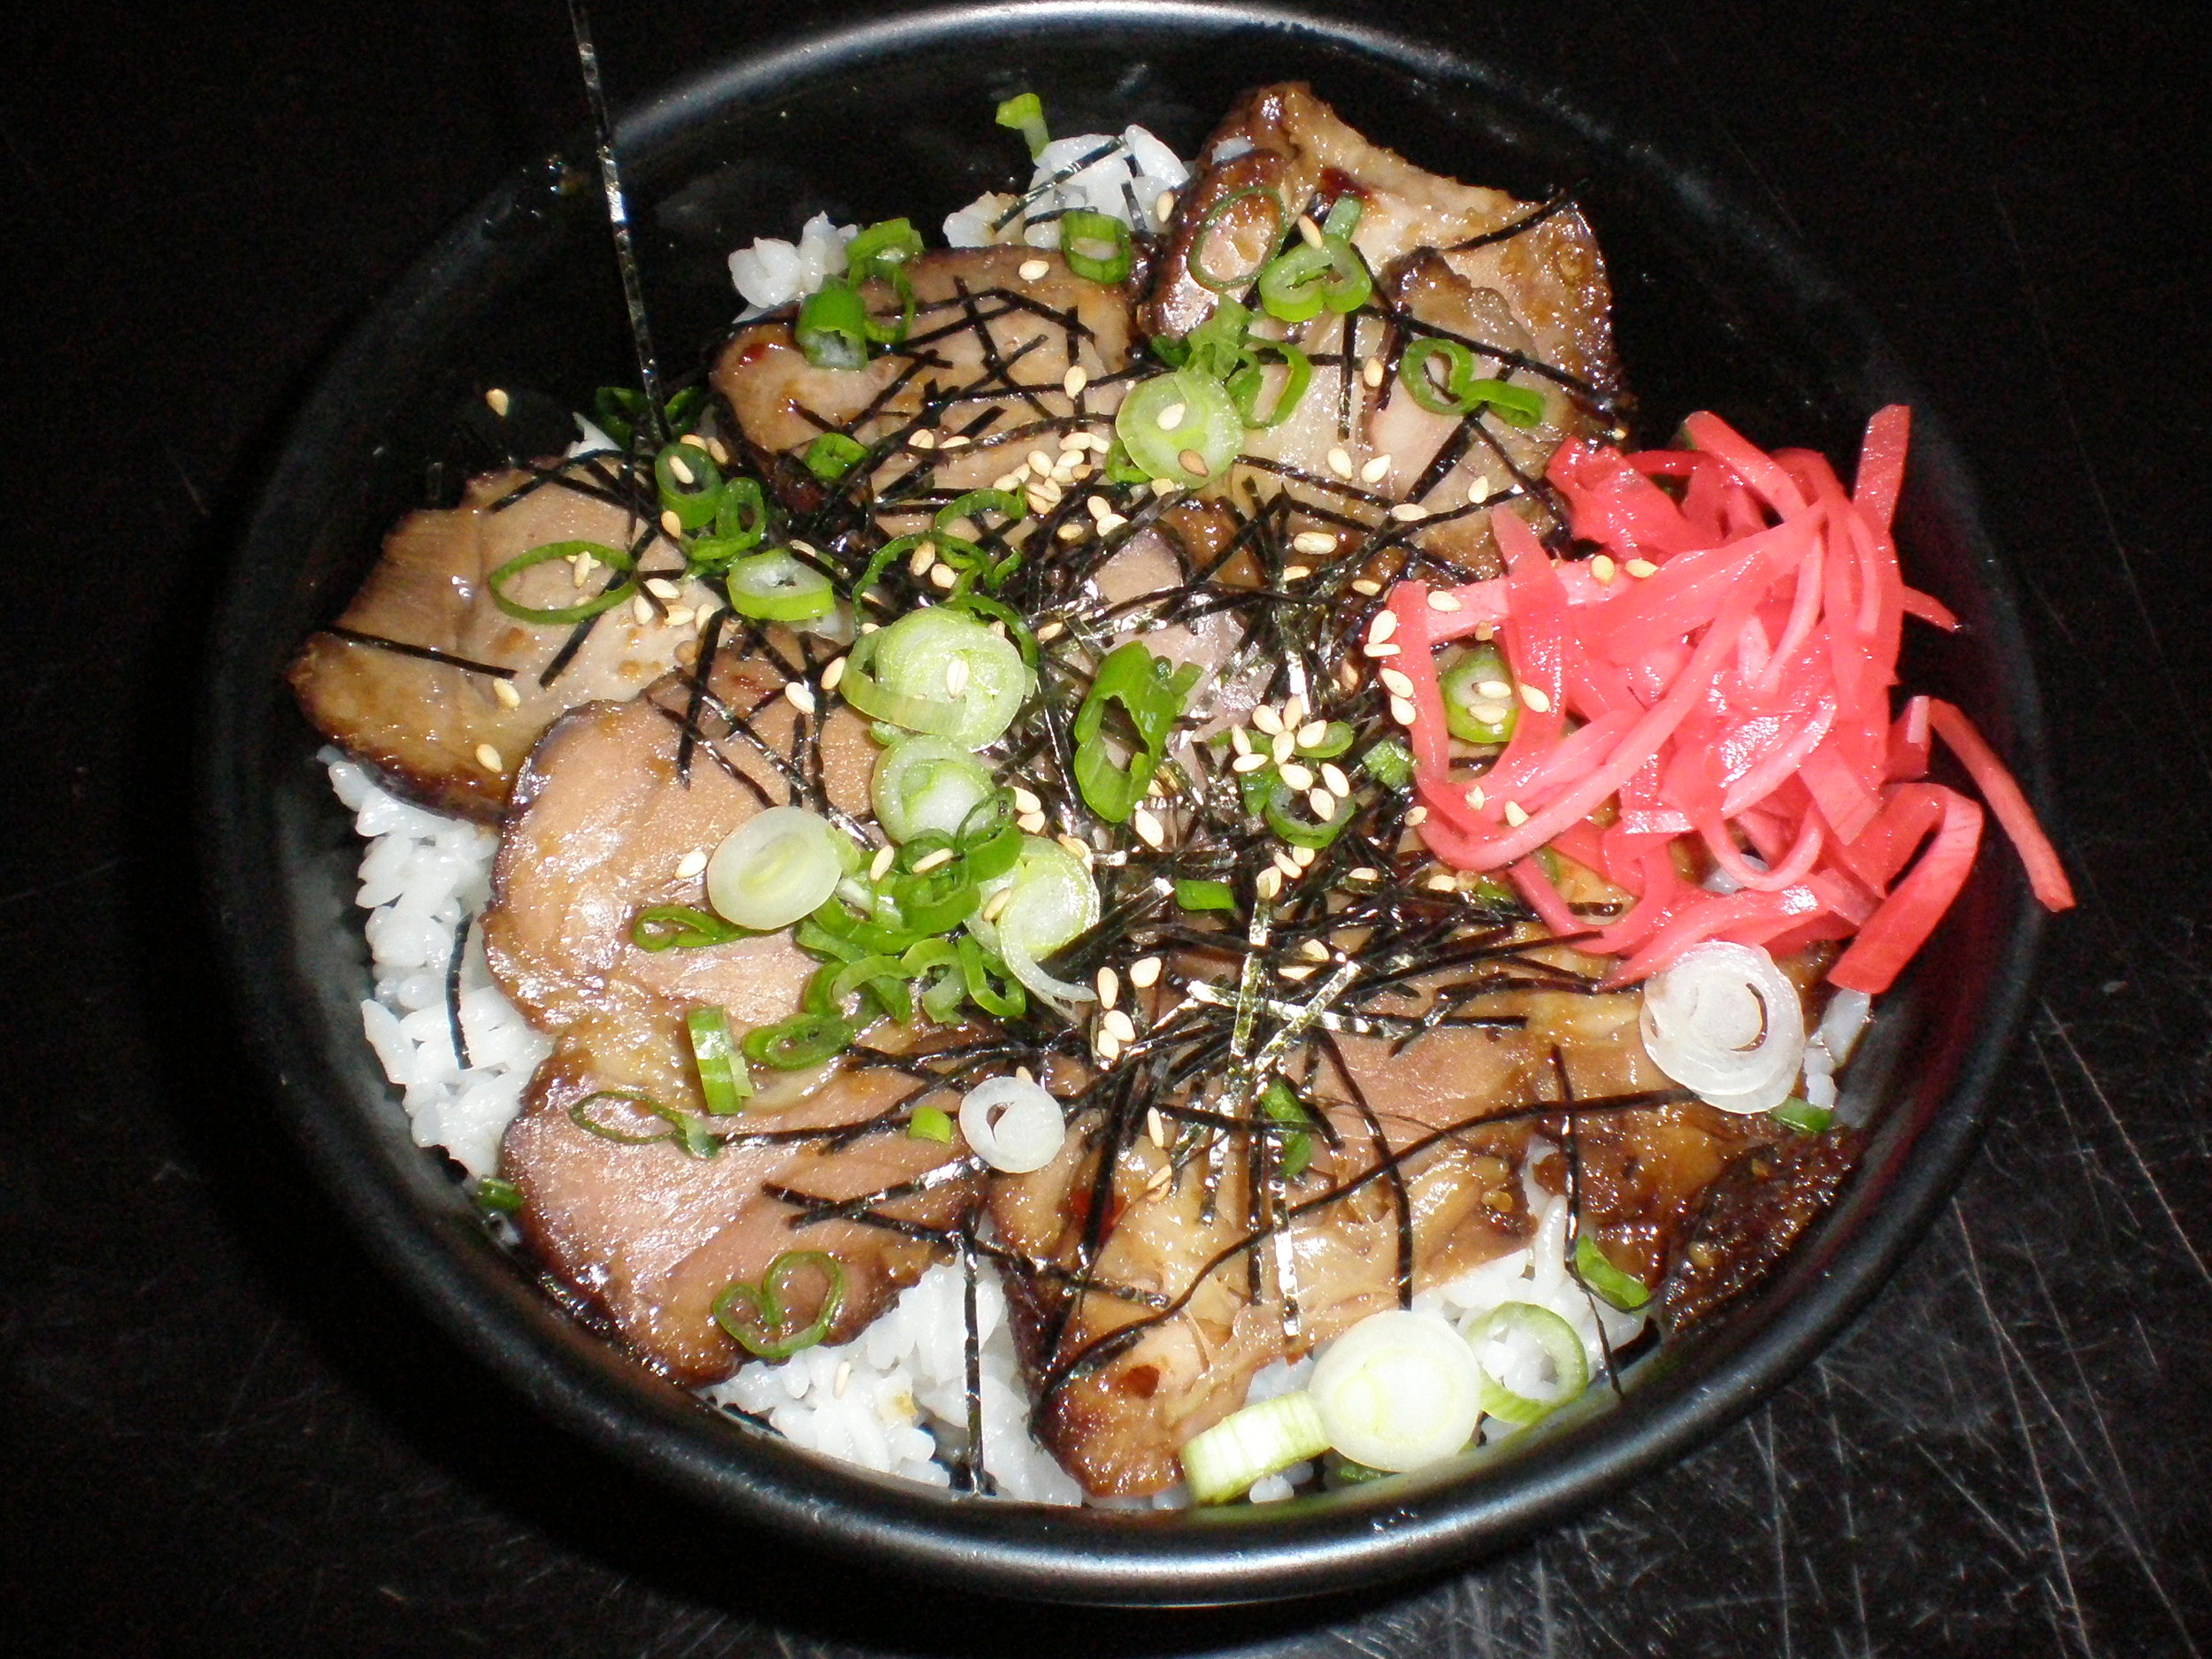 Chashu Pork and Rice